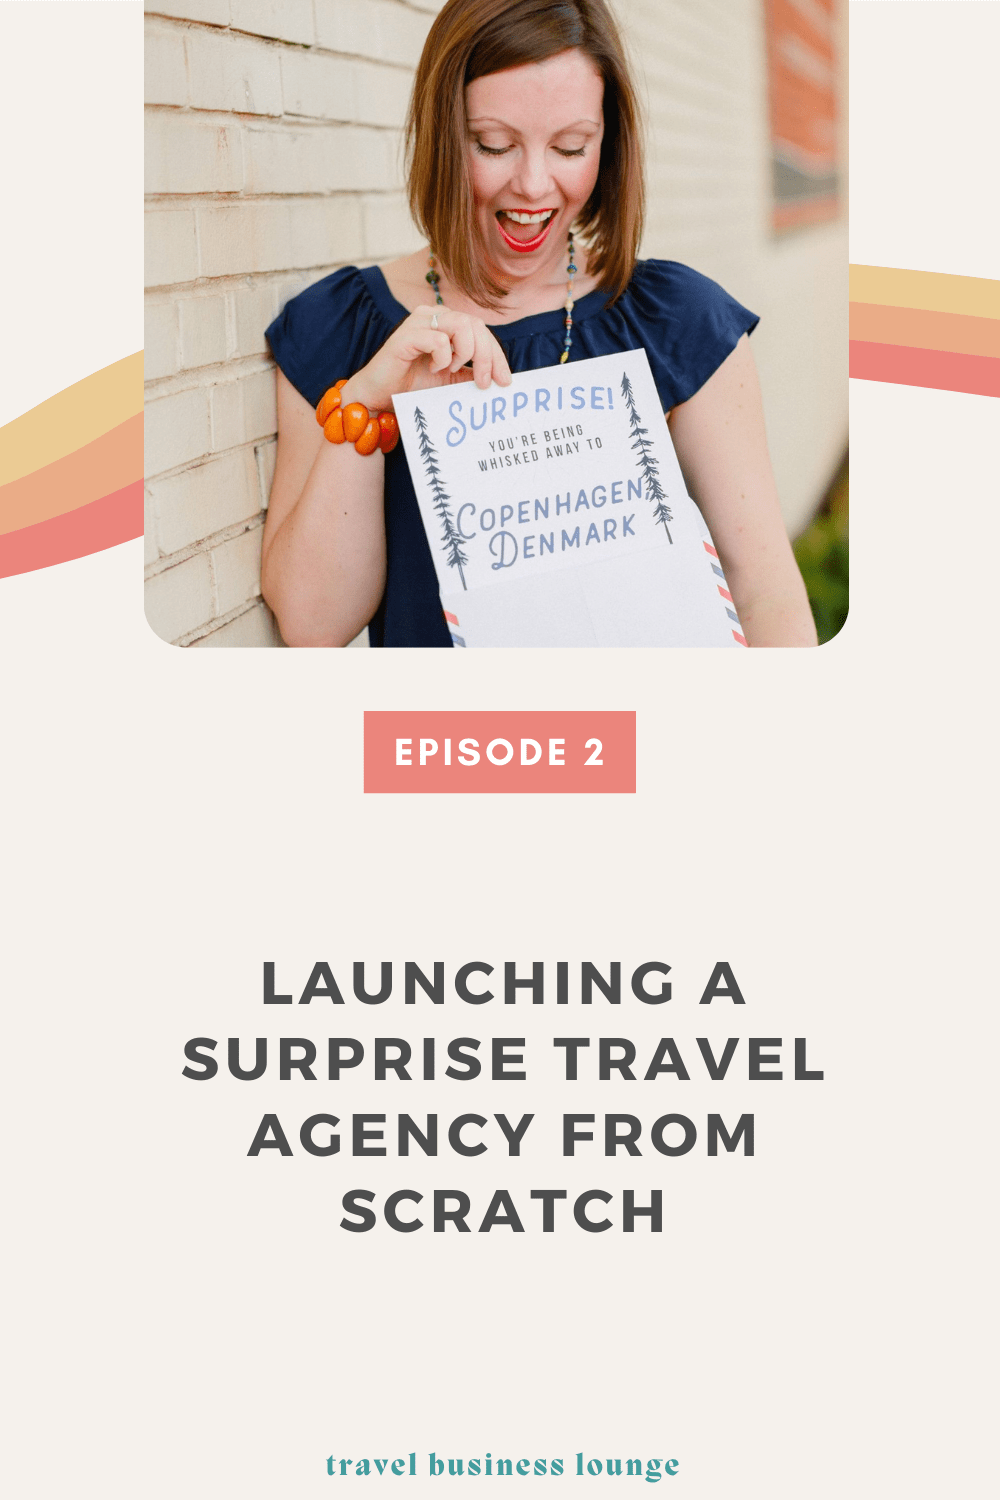 4 Launching a Surprise Travel Agency From Scratch